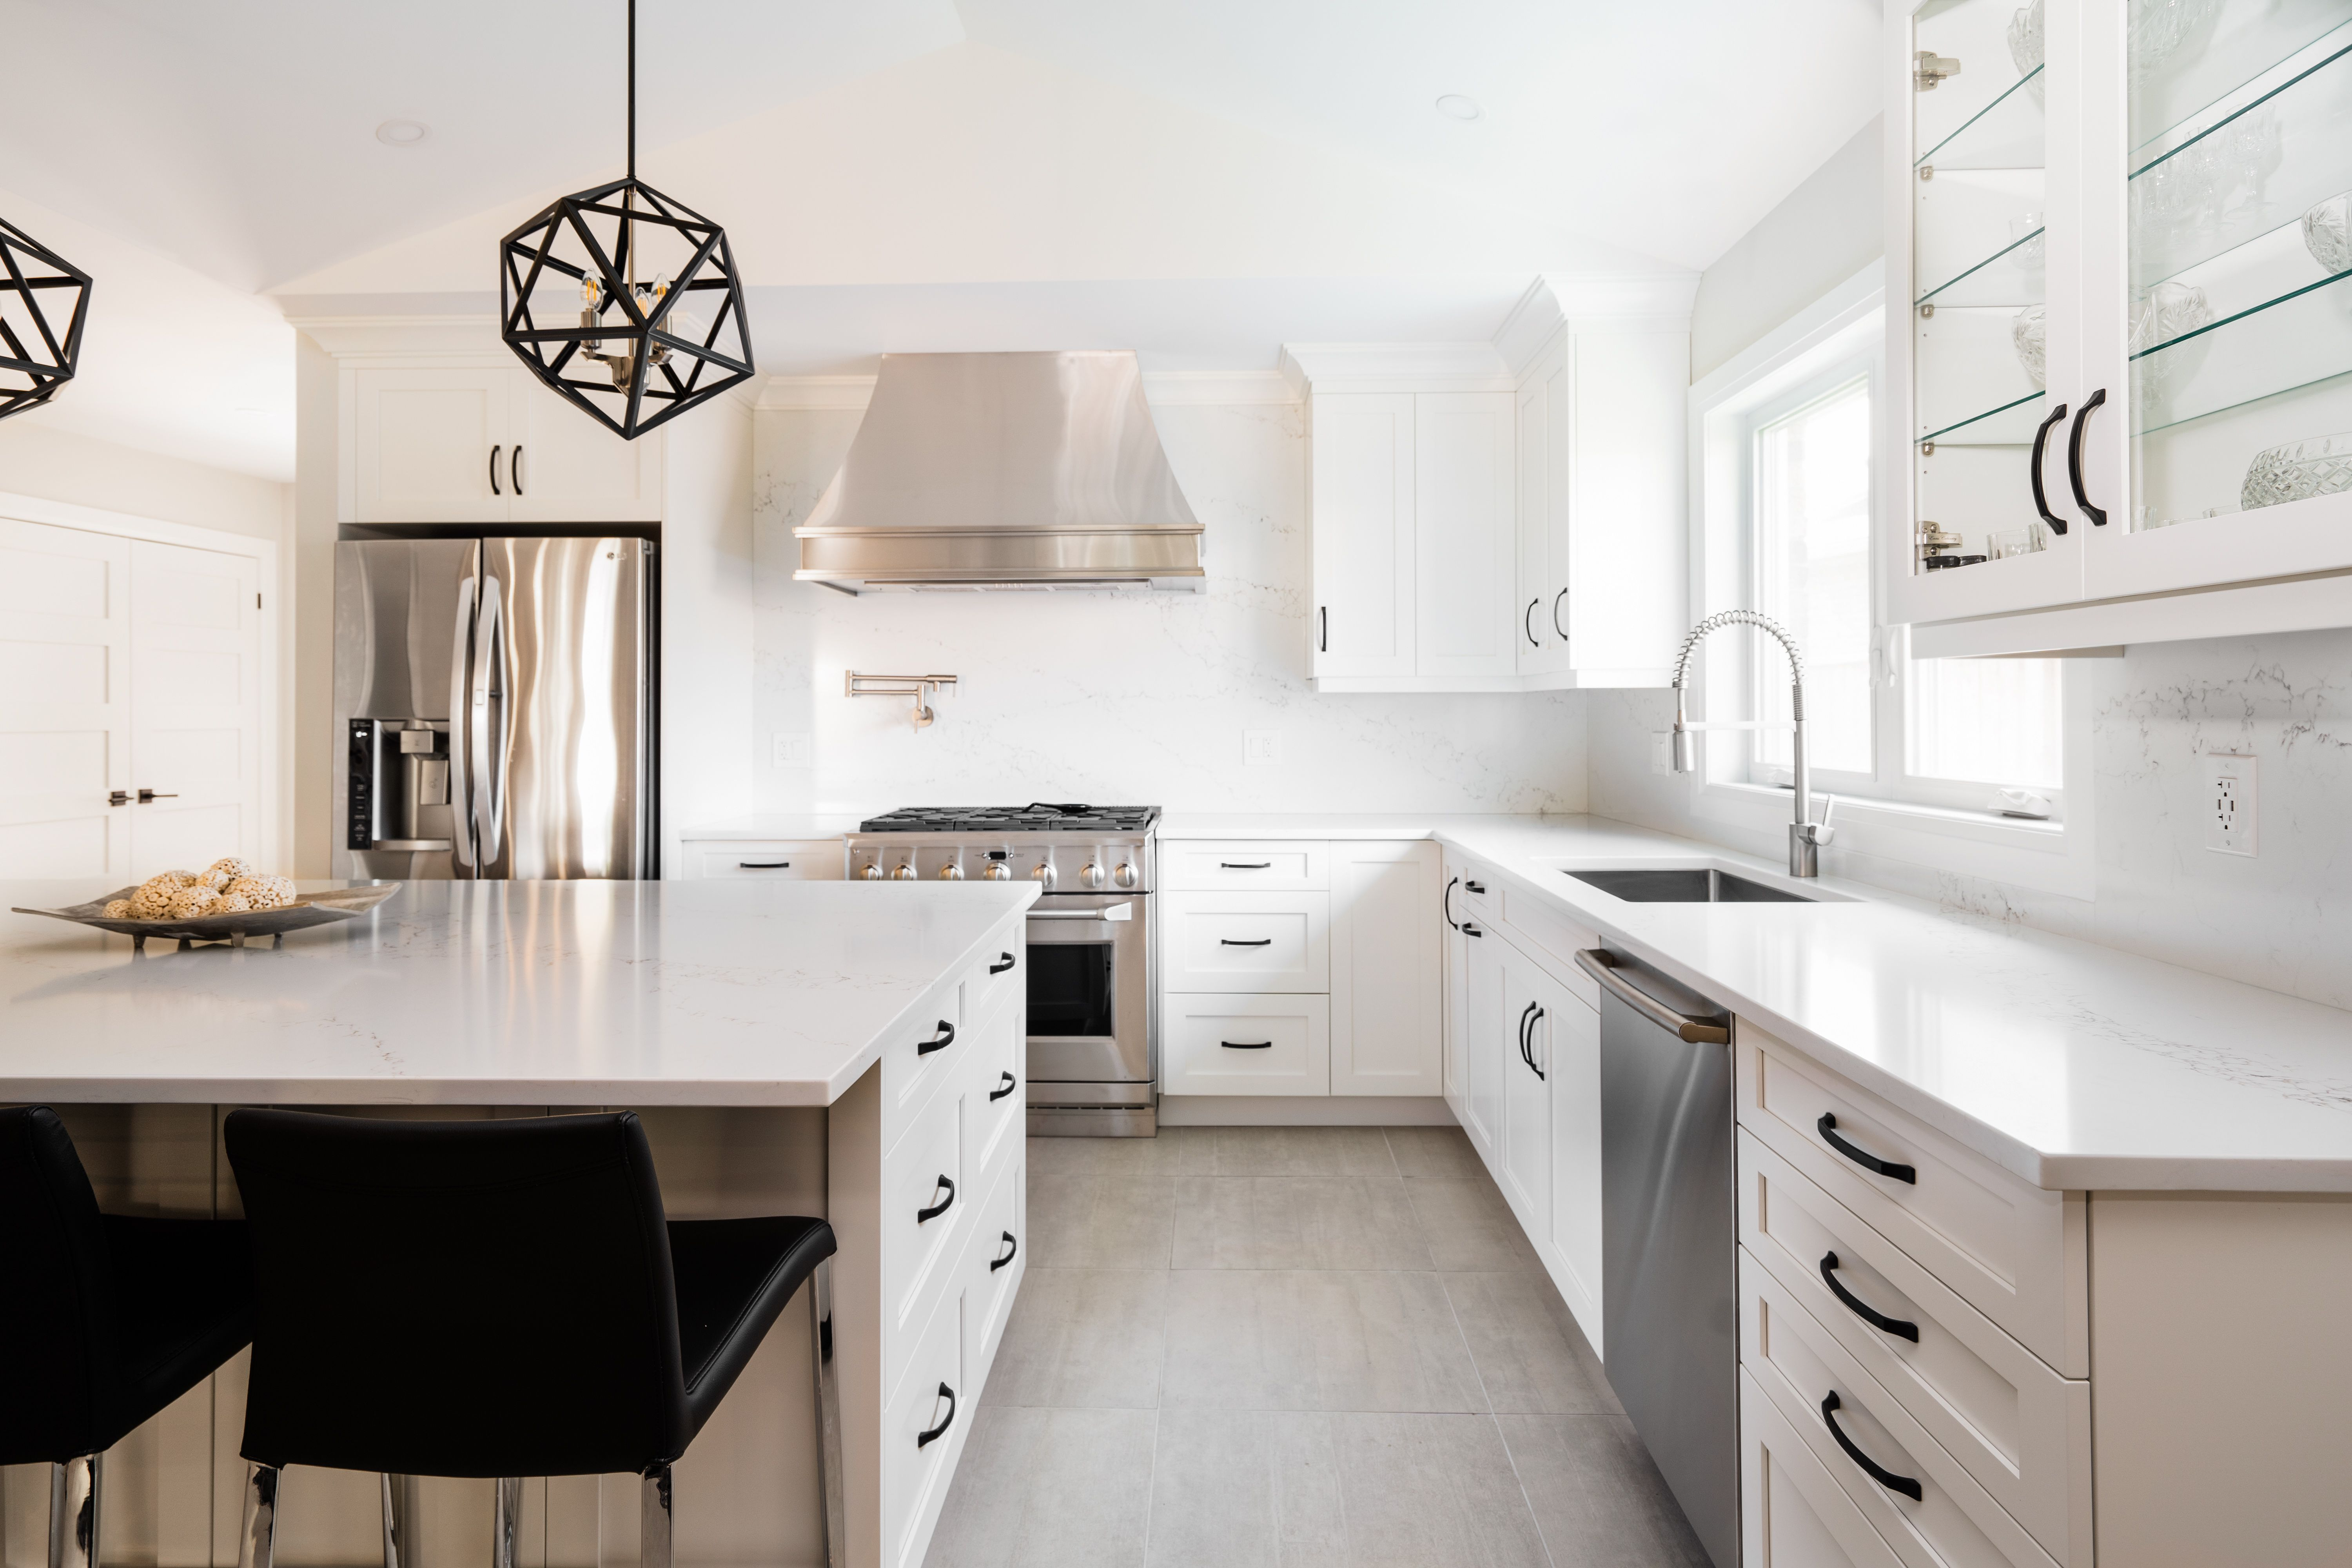 Miralis X Enns Cabinetry In 2020 Cabinet Inspiration Kitchen Cabinets In Bathroom Kitchen Inspirations